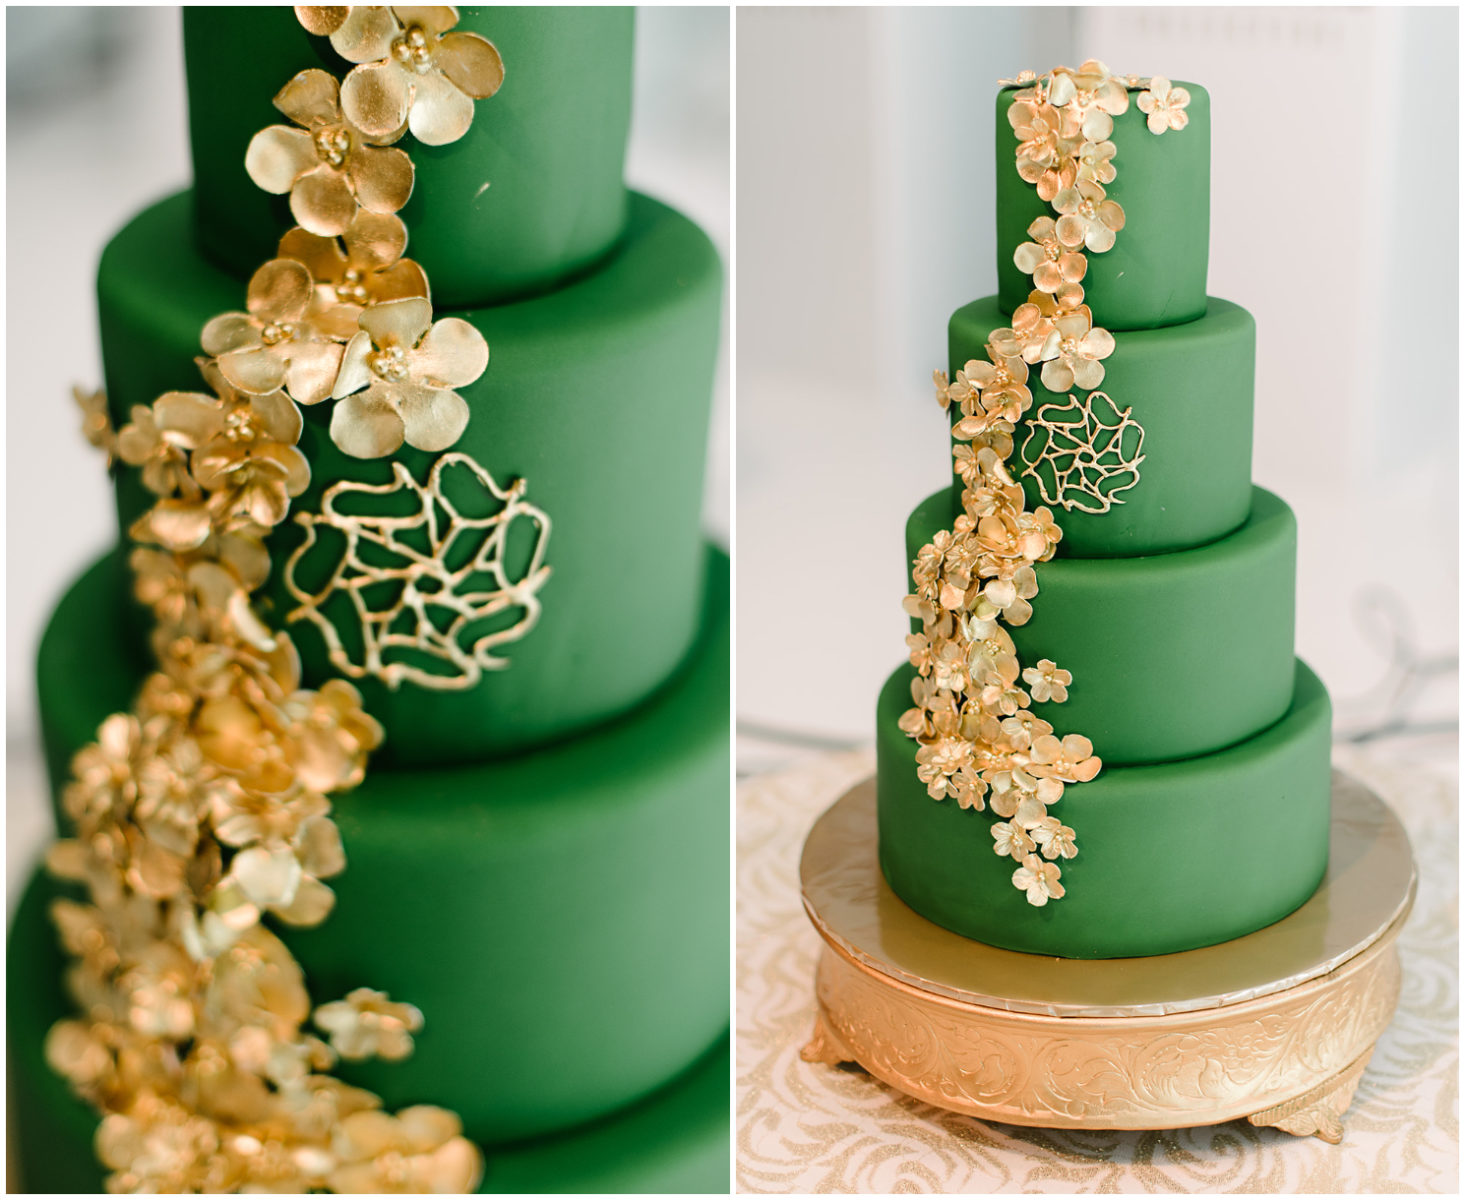 The Art of Cake Elegant Green and Gold Wedding Cake